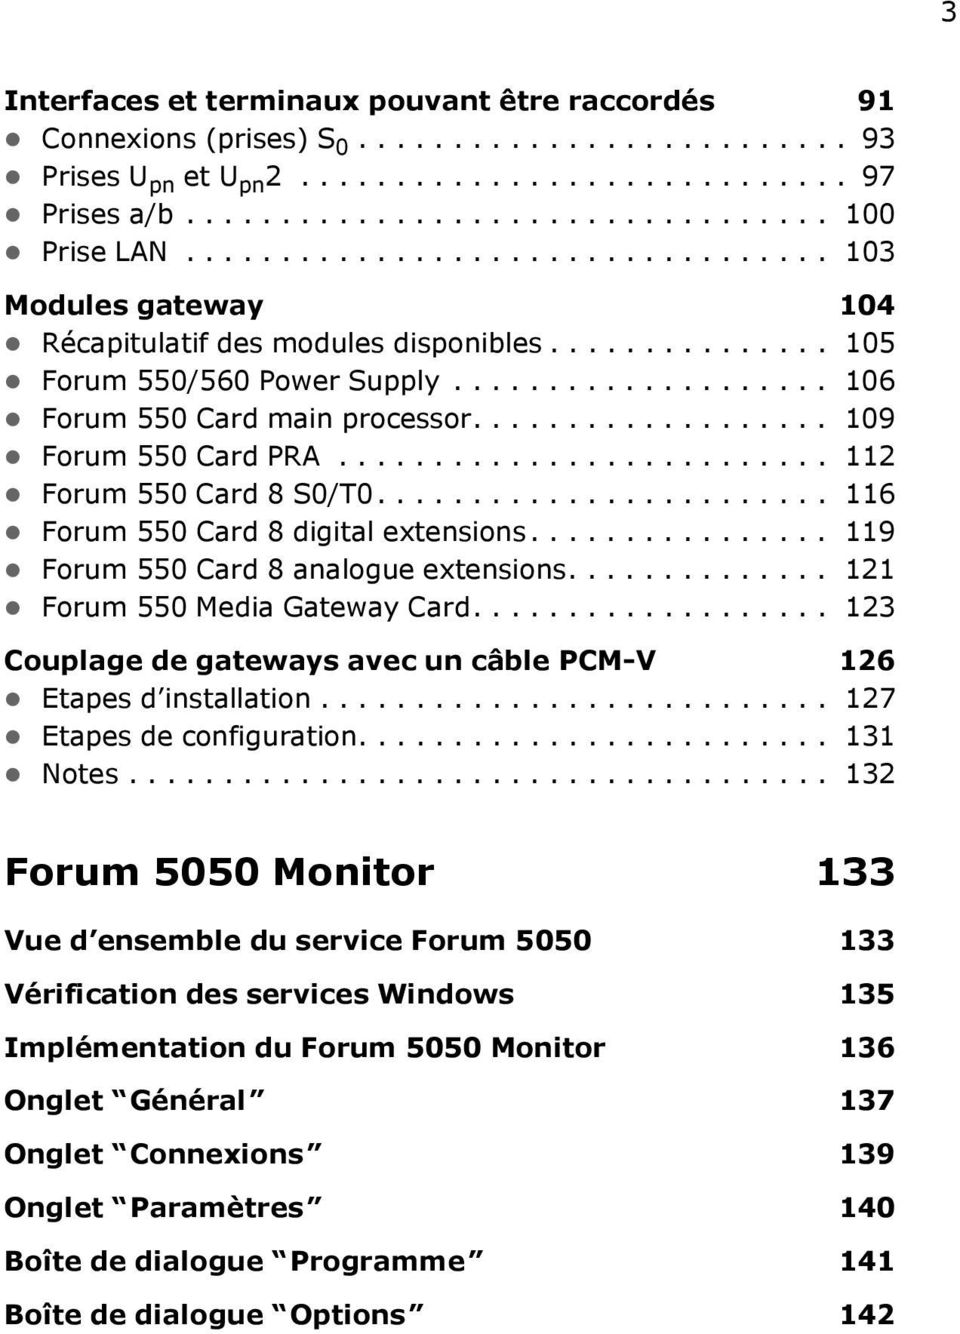 .................. 109 Forum 550 Card PRA.......................... 112 Forum 550 Card 8 S0/T0........................ 116 Forum 550 Card 8 digital extensions.